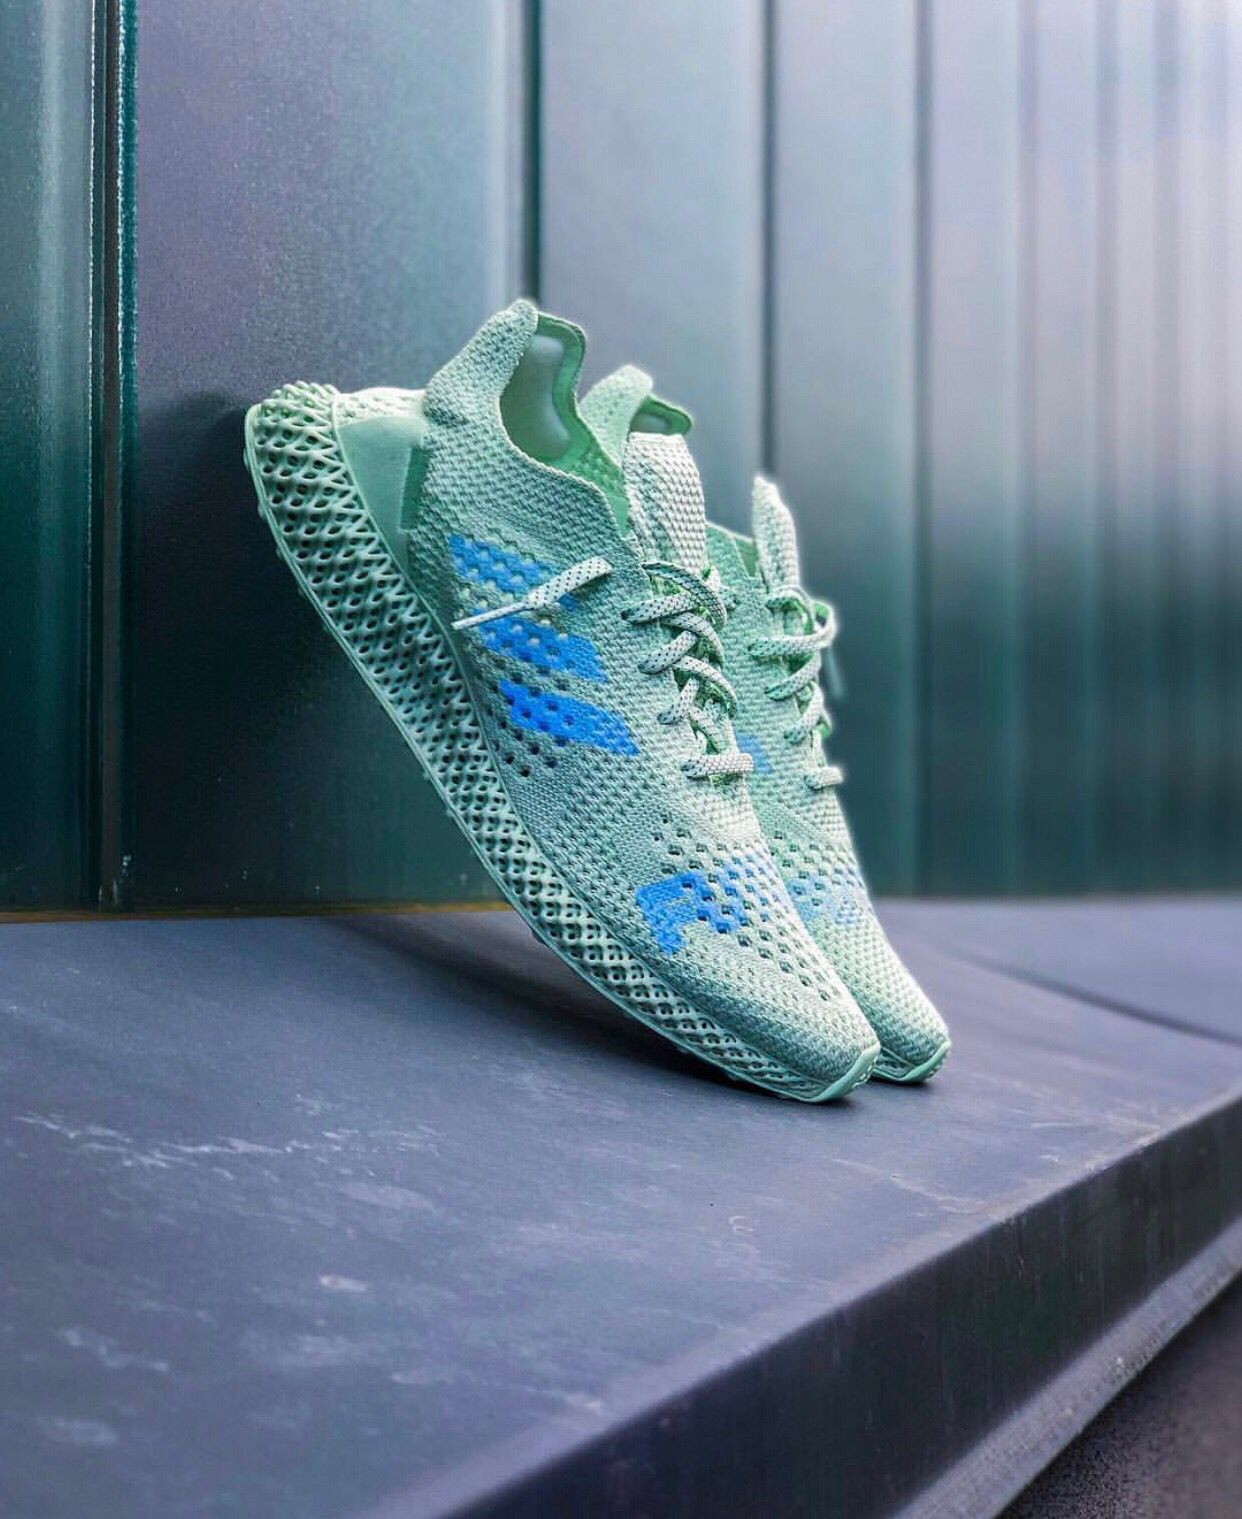 the latest 45a3e d724f Daniel Arsham x adidas Futurecraft 4D | Shoe Photography in ...